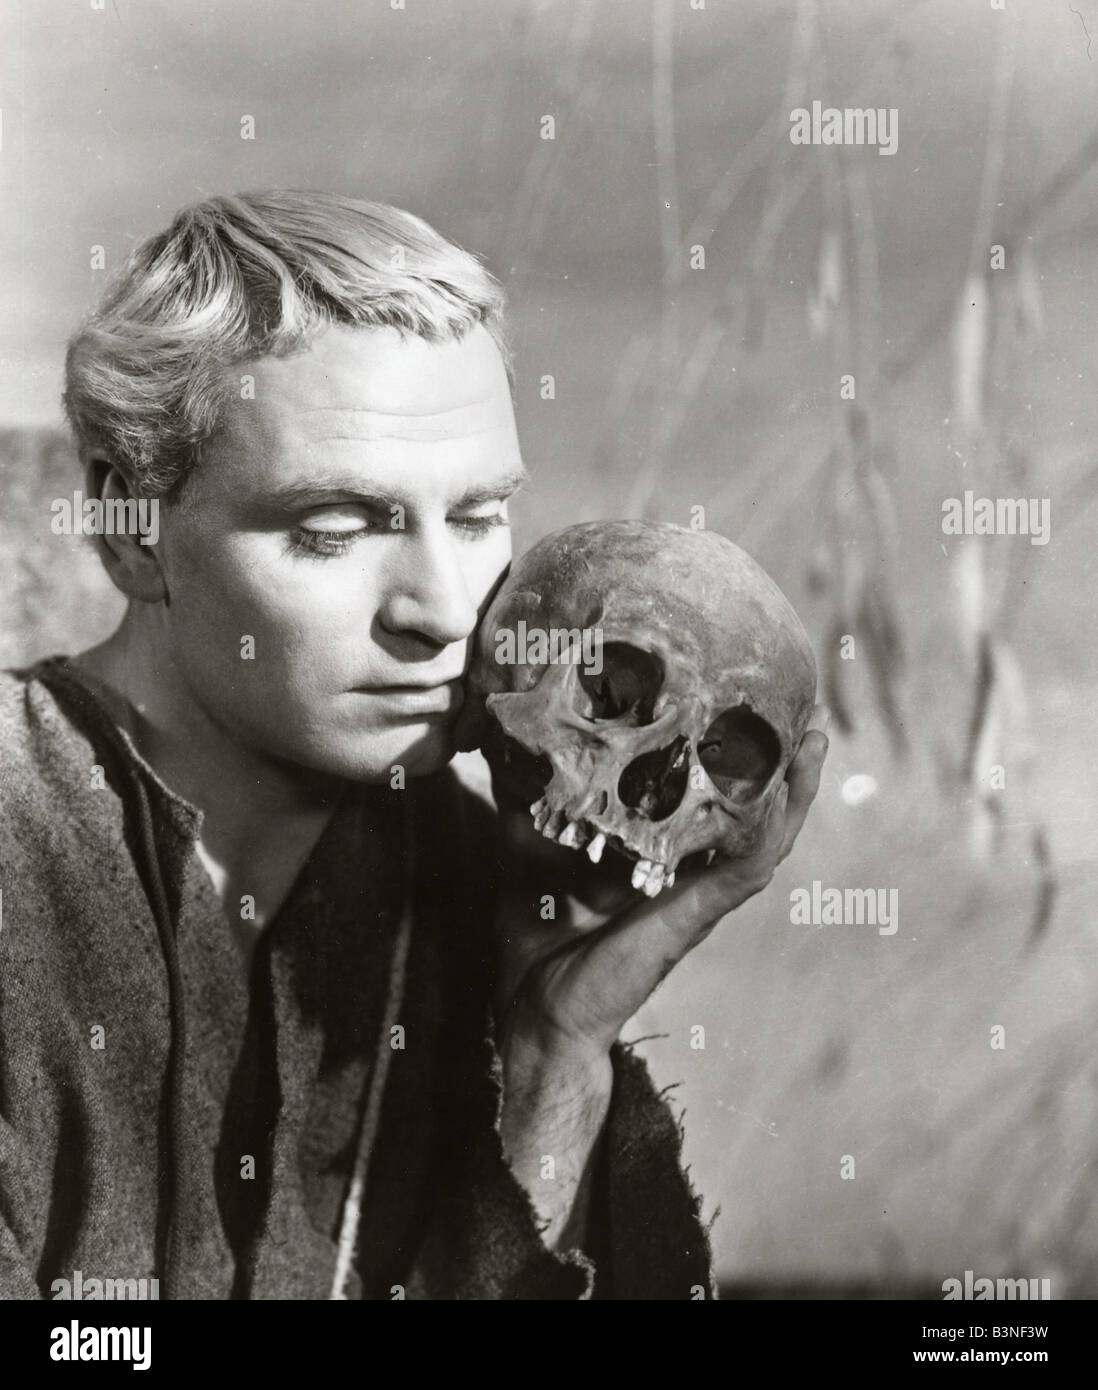 LAURENCE OLIVIER UK actor as Hamlet - Stock Image